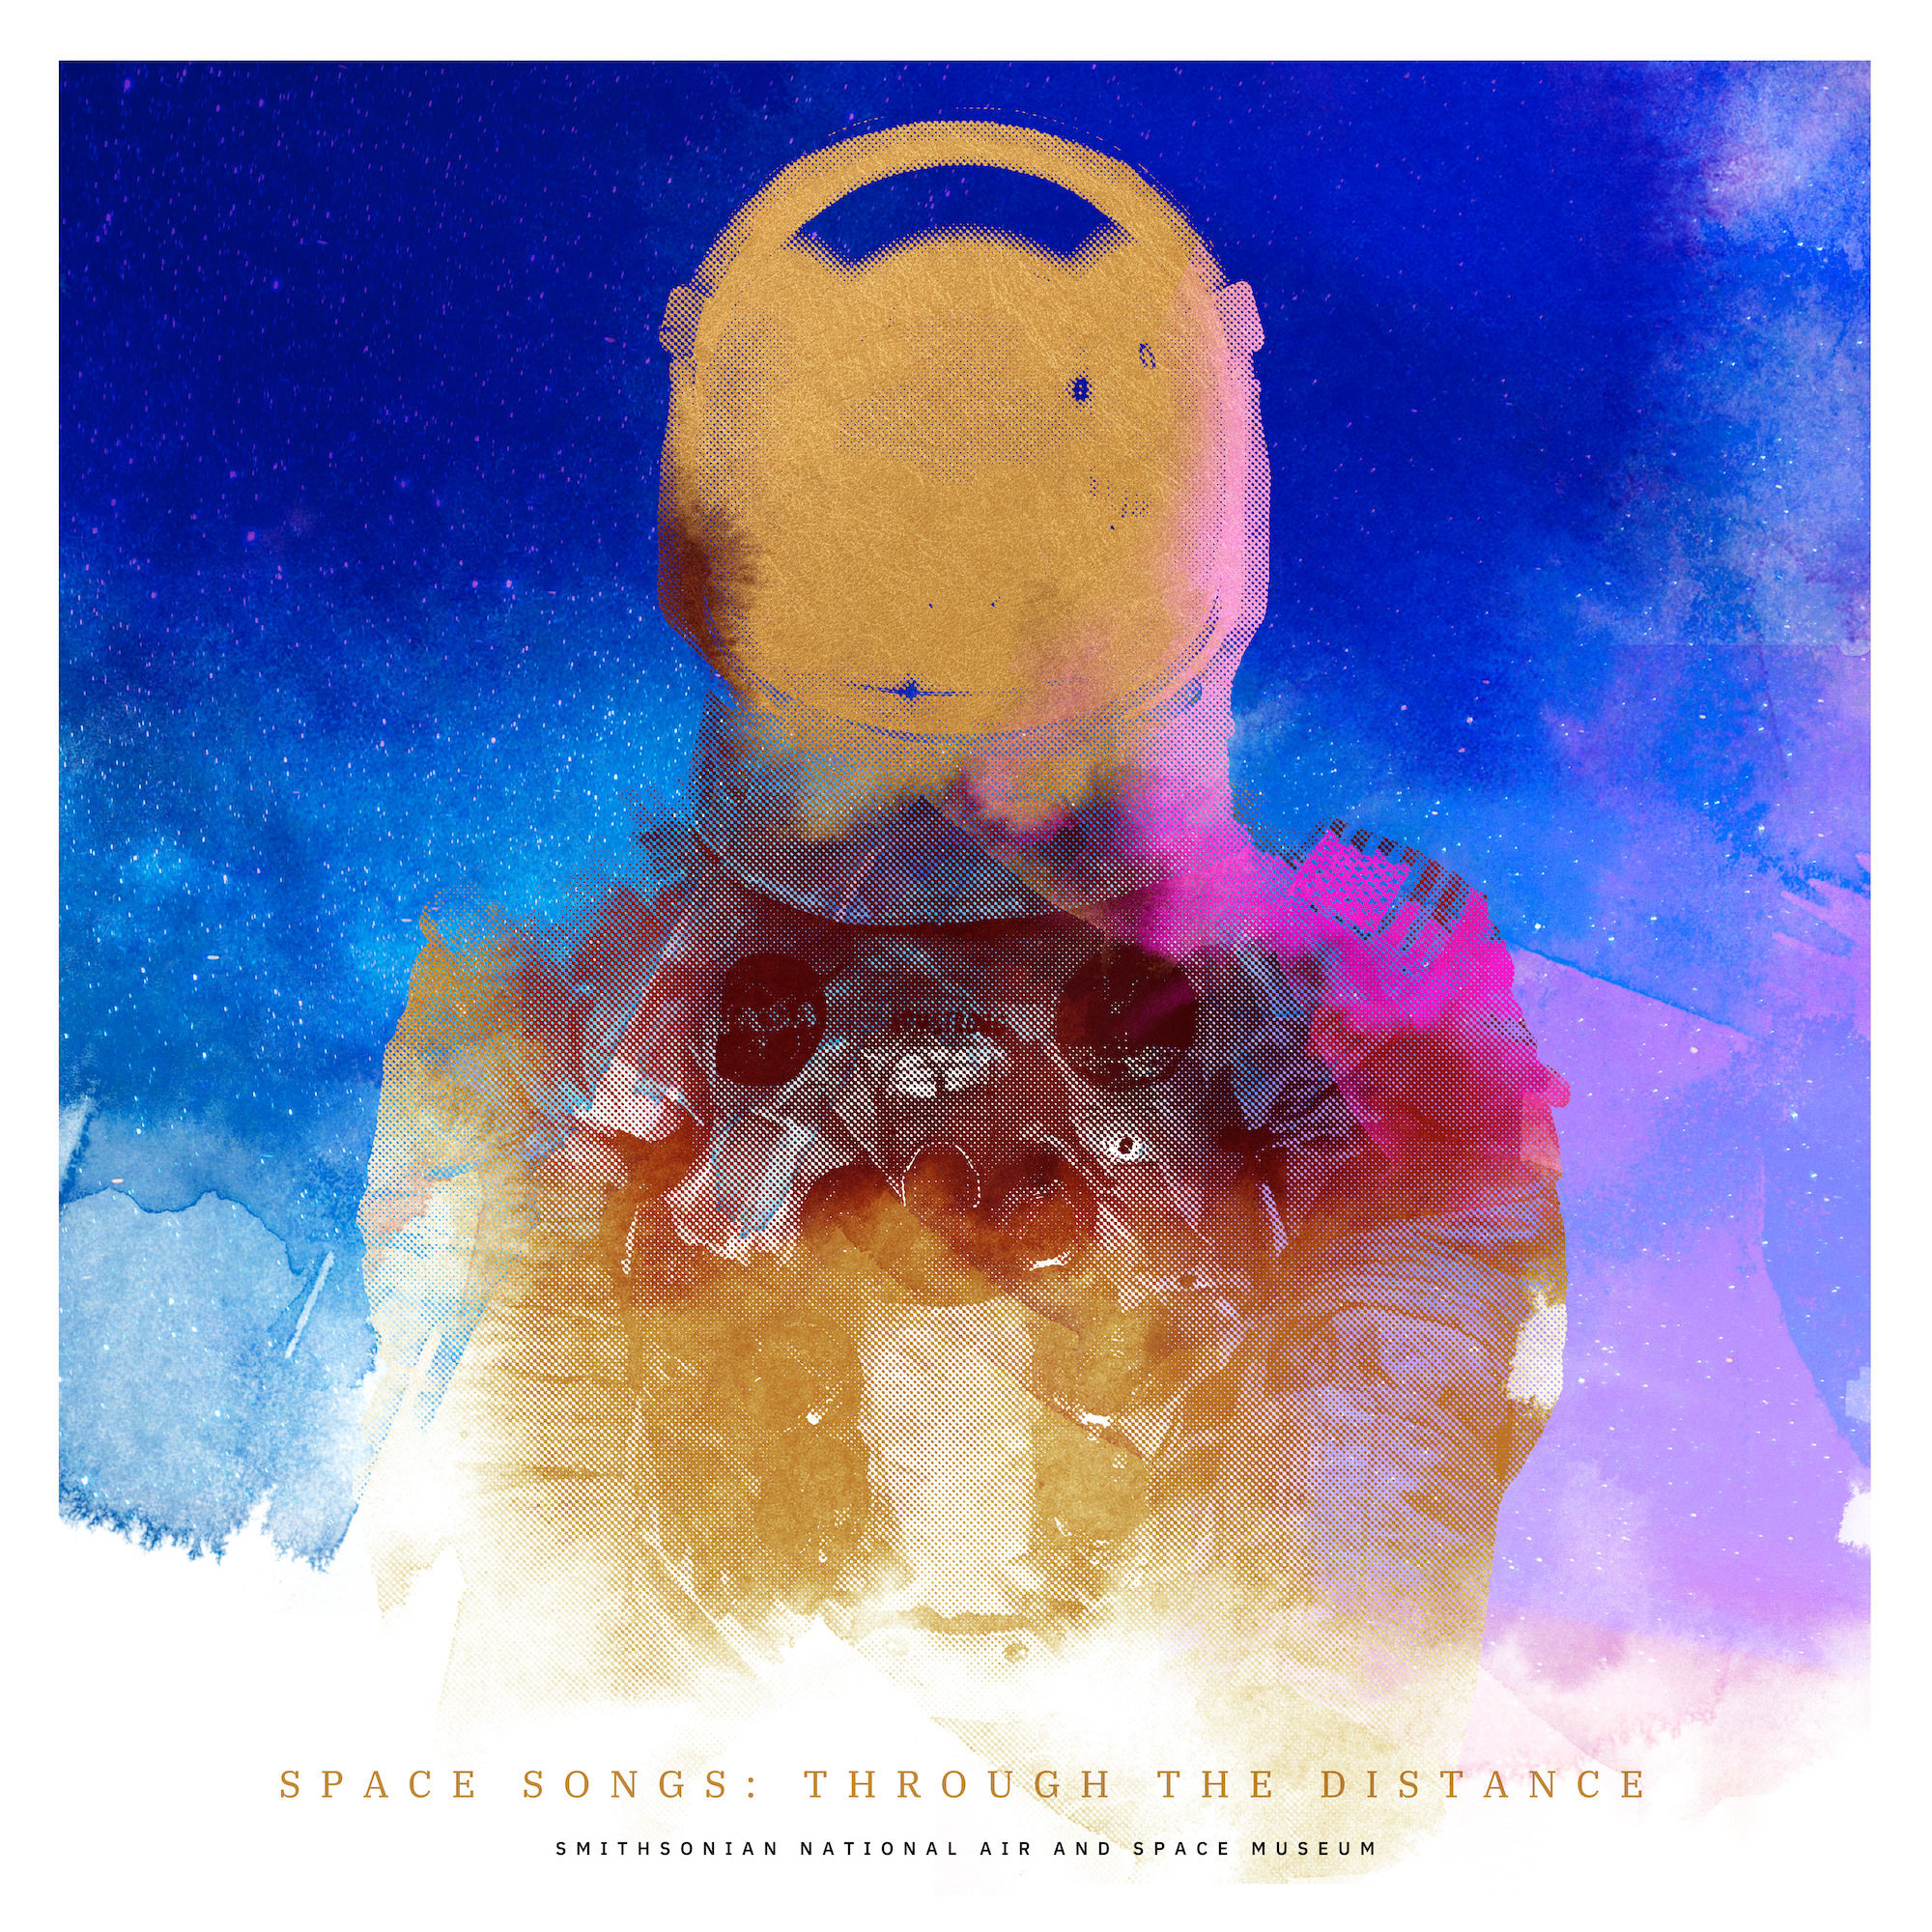 Space songs poster